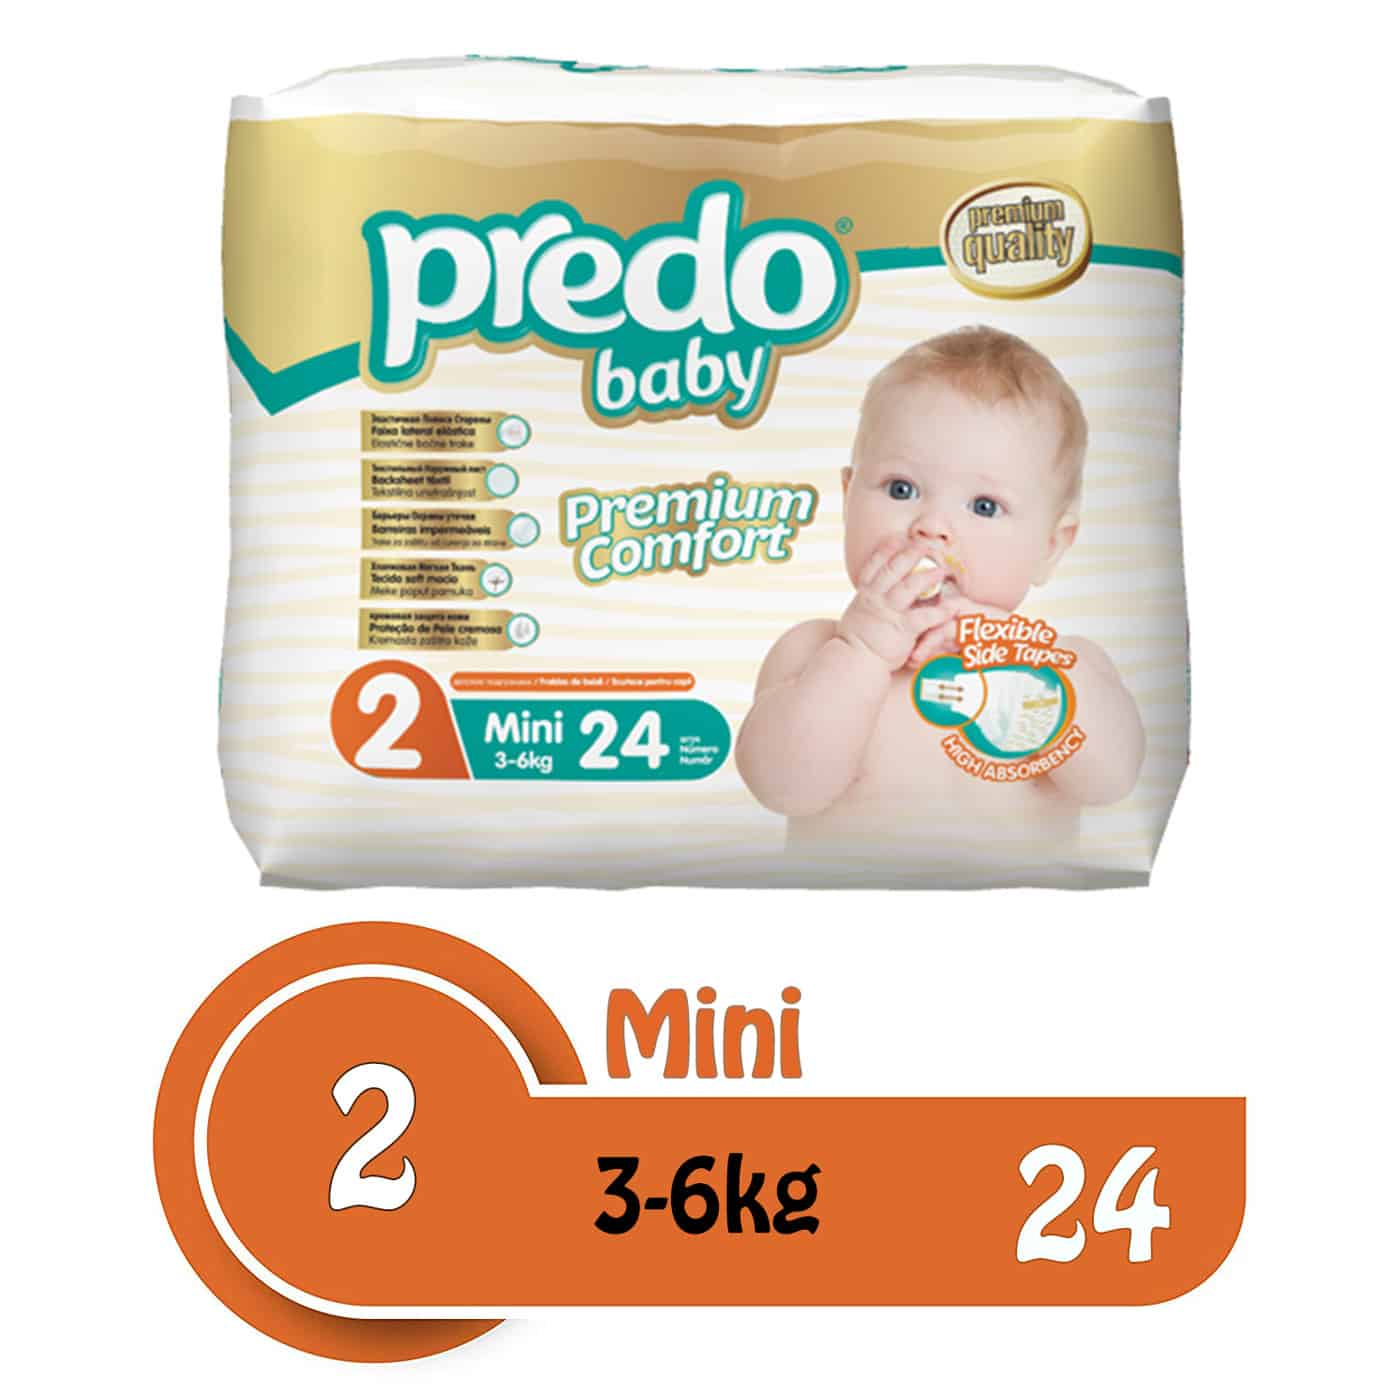 Buy Predo Baby Mini Eco 3-6kg, Size 2, 24 pieces online with Free Shipping at Baby Amore India, Babyamore.in